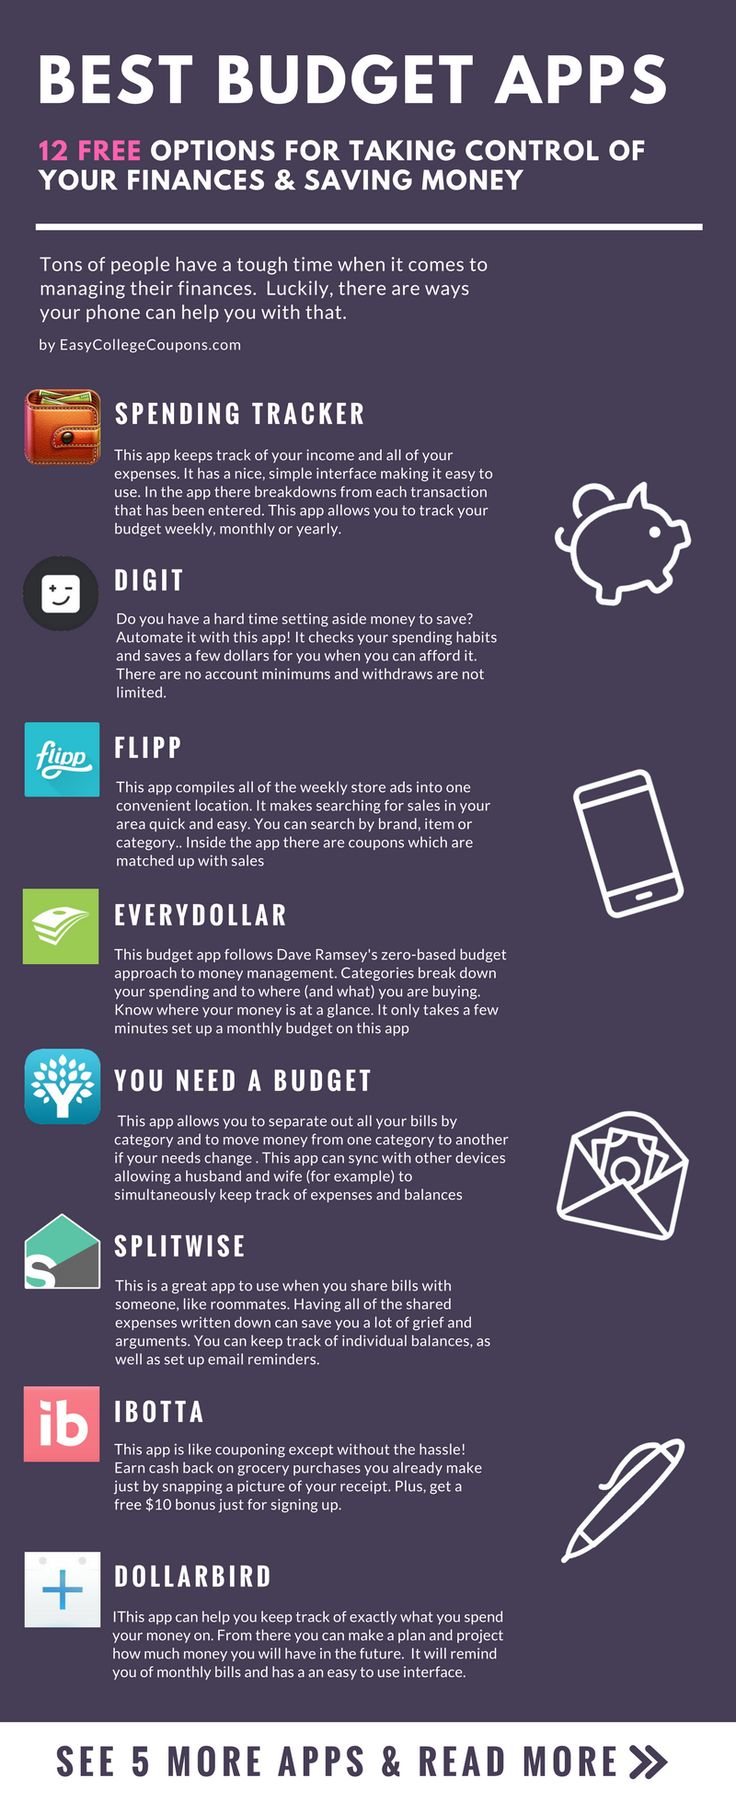 Best Budget Apps: 12 Free Options for Taking Control of Your Finances & Saving Money